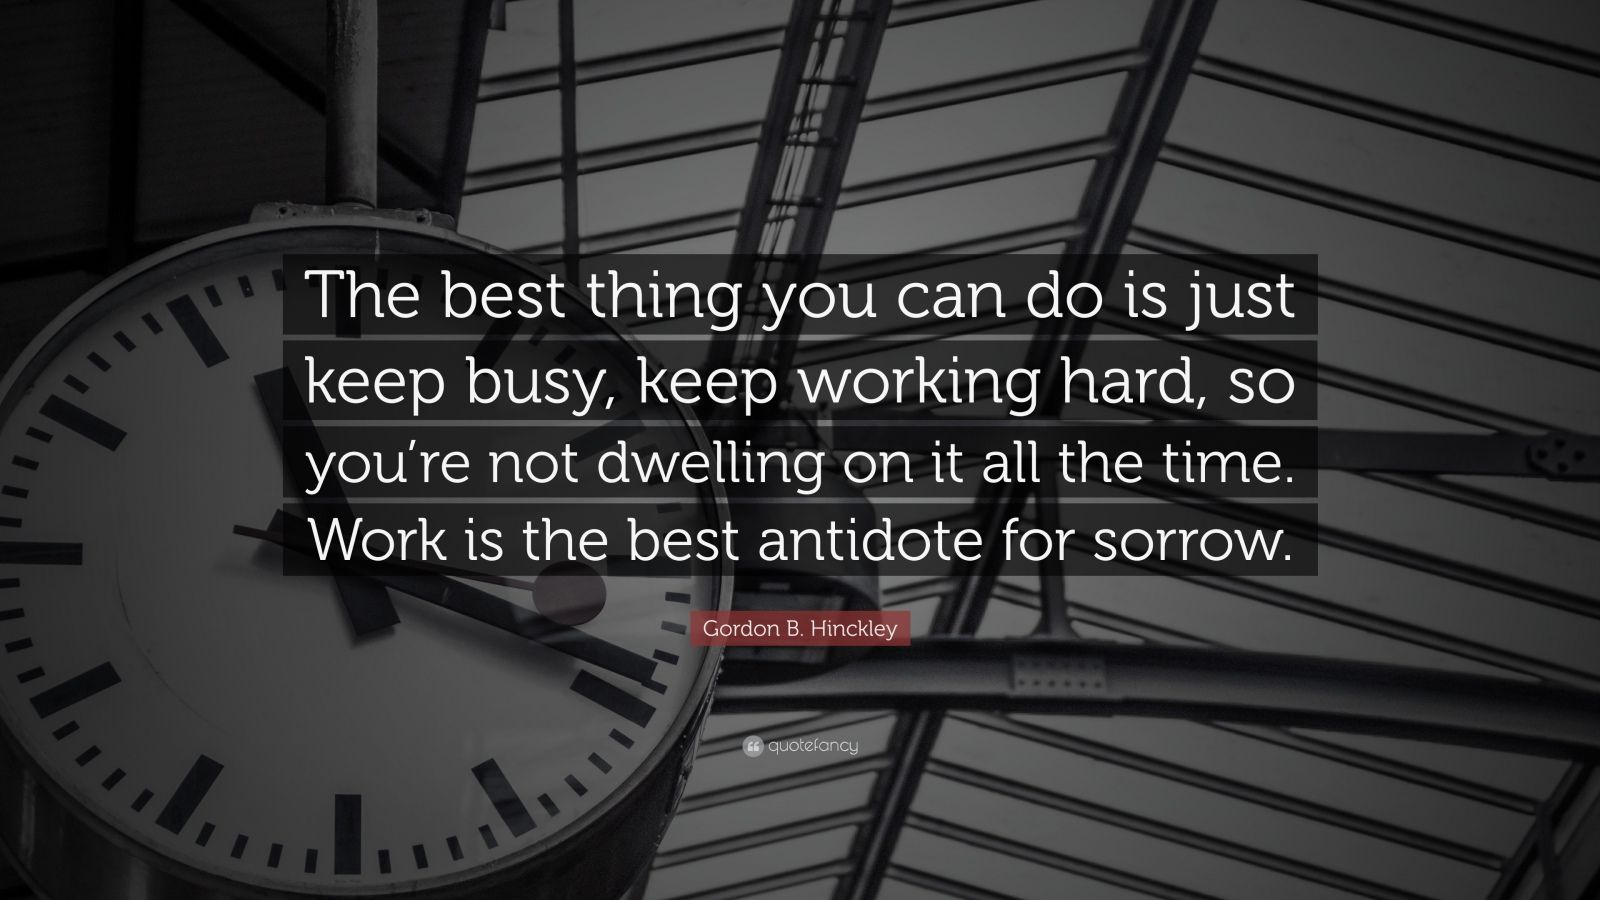 """Gordon B. Hinckley Quote: """"The best thing you can do is just keep busy, keep working hard, so you're not dwelling on it all the time. Work is the best antidote for sorrow."""""""